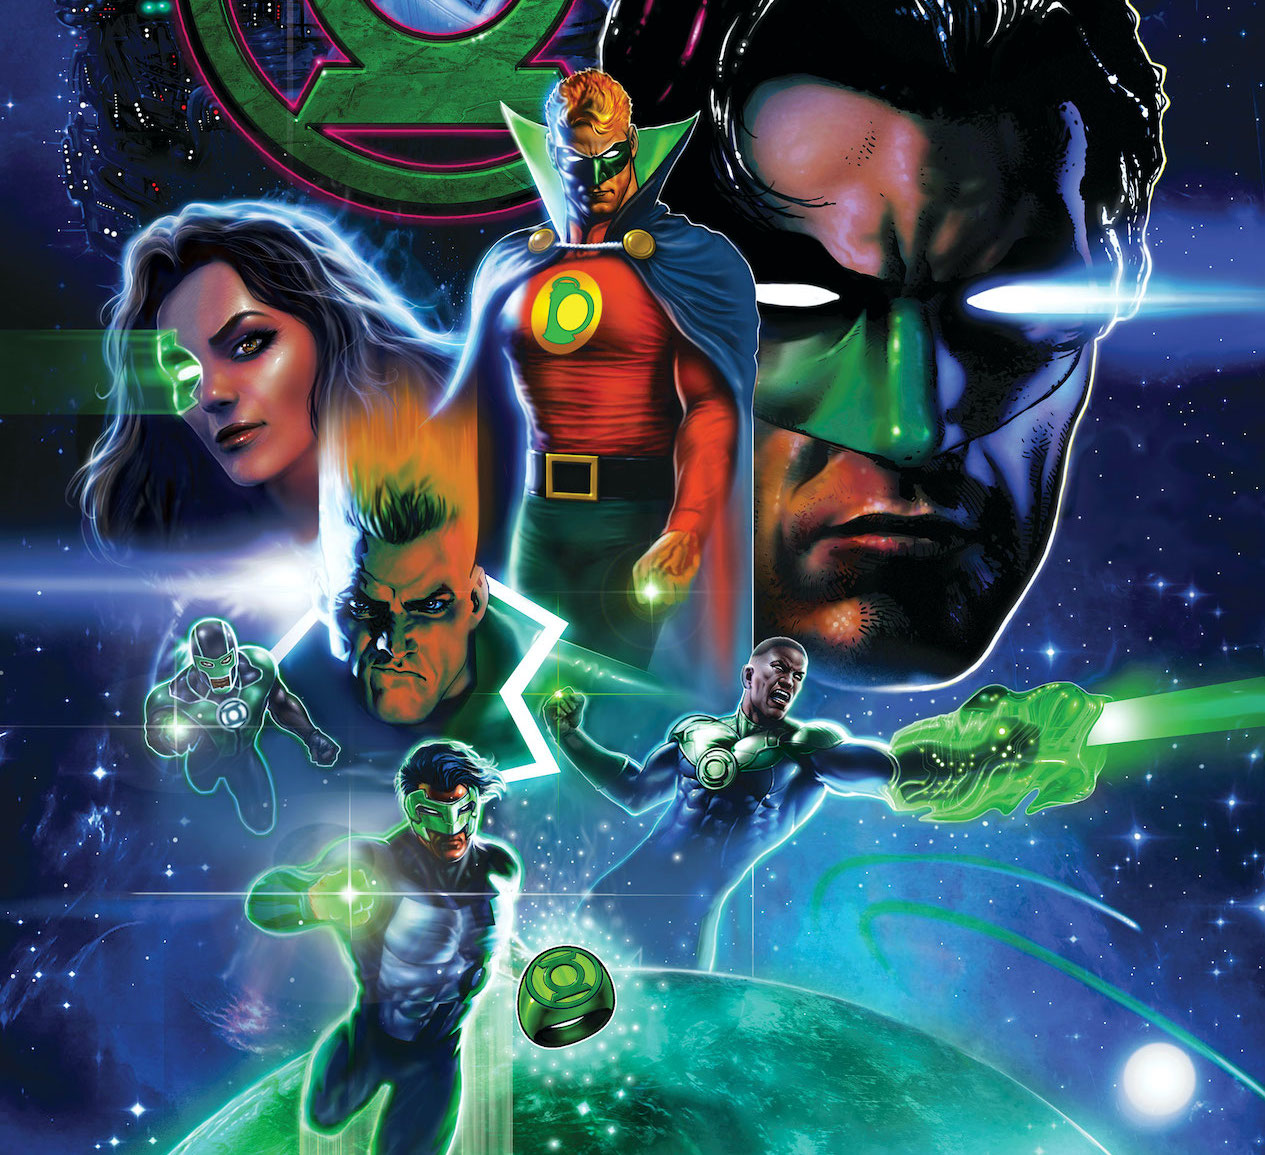 Green Lantern tales from a variety of comics greatest creators.